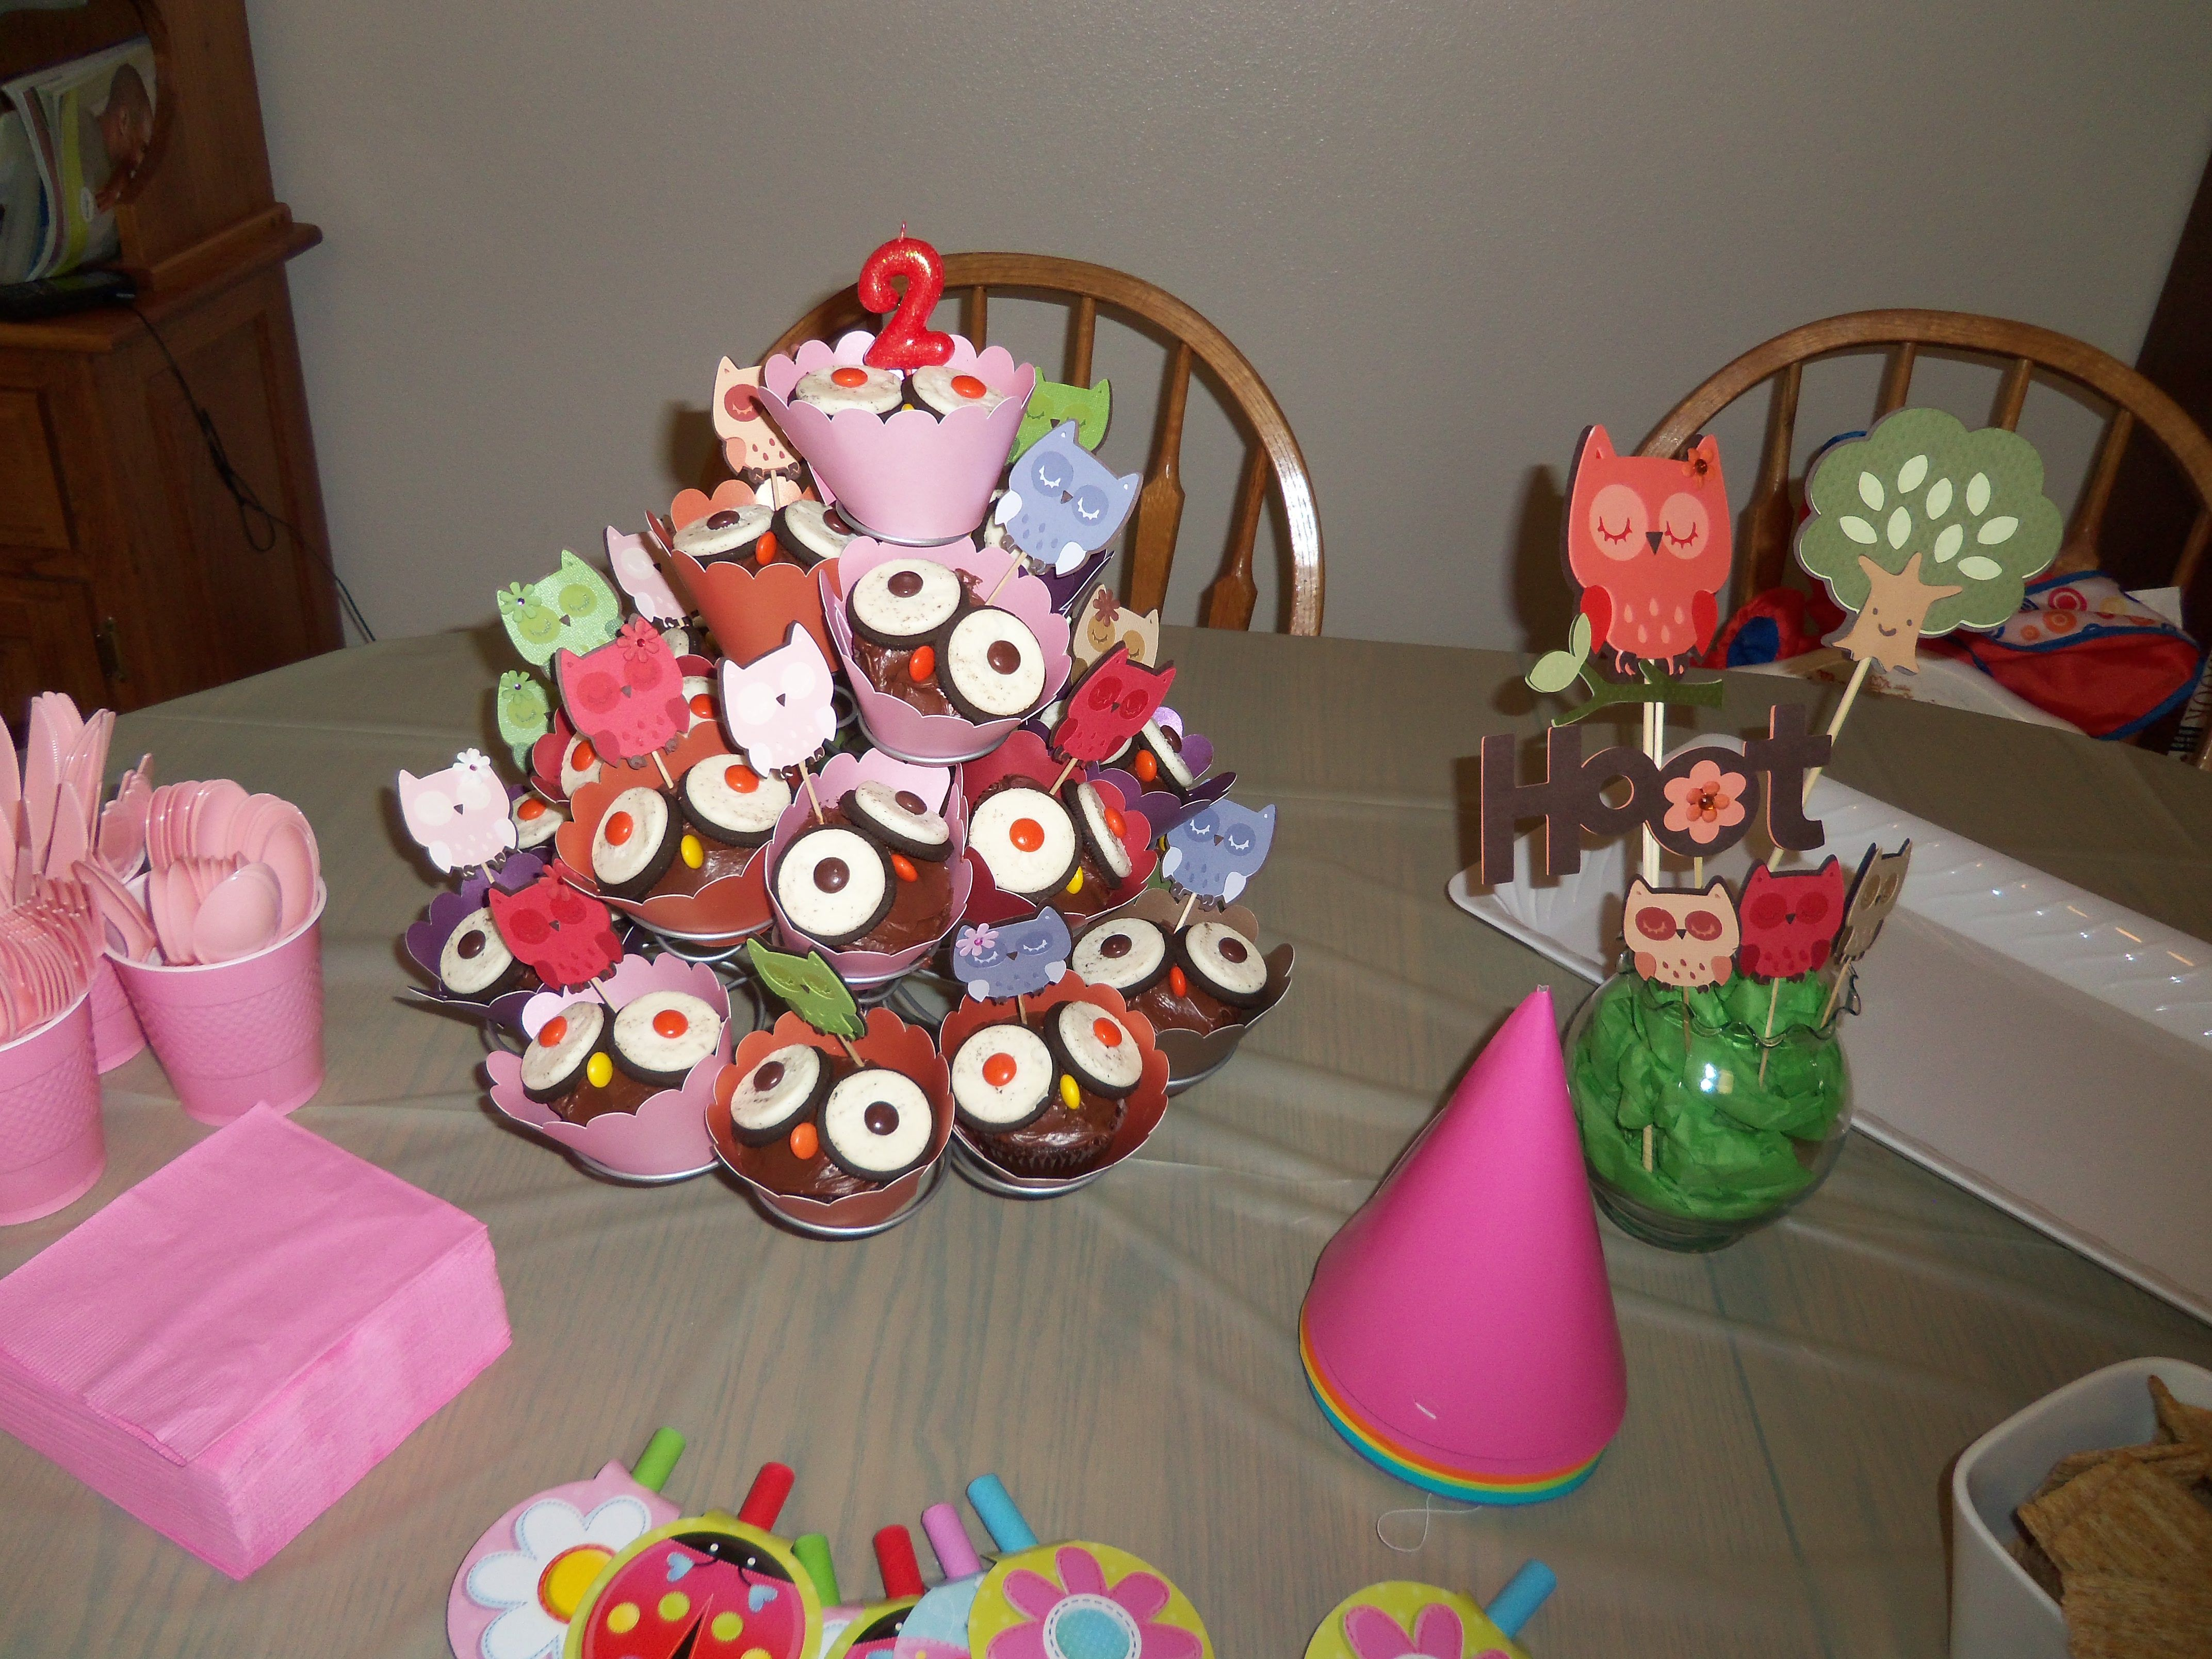 54 best images about Cake Walk Cake Ideas on Pinterest |Cute Easy Cupcake Decorating Ideas